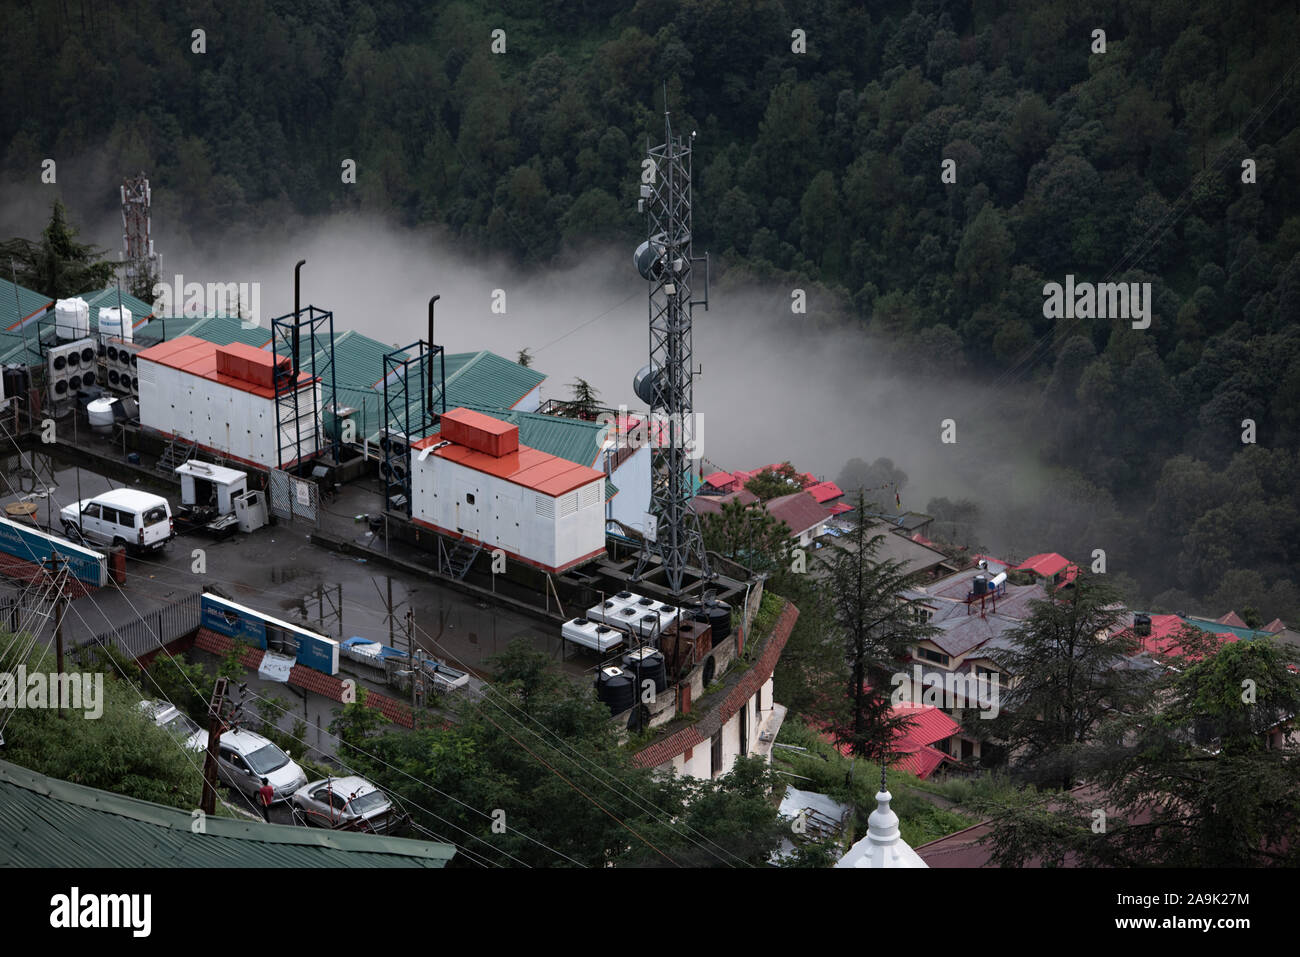 Buildings, mobile masts, telegraph poles on the misty mountains during monsoon season in the Himalayas. Hills around Shimla, Himachal Pradesh, India Stock Photo